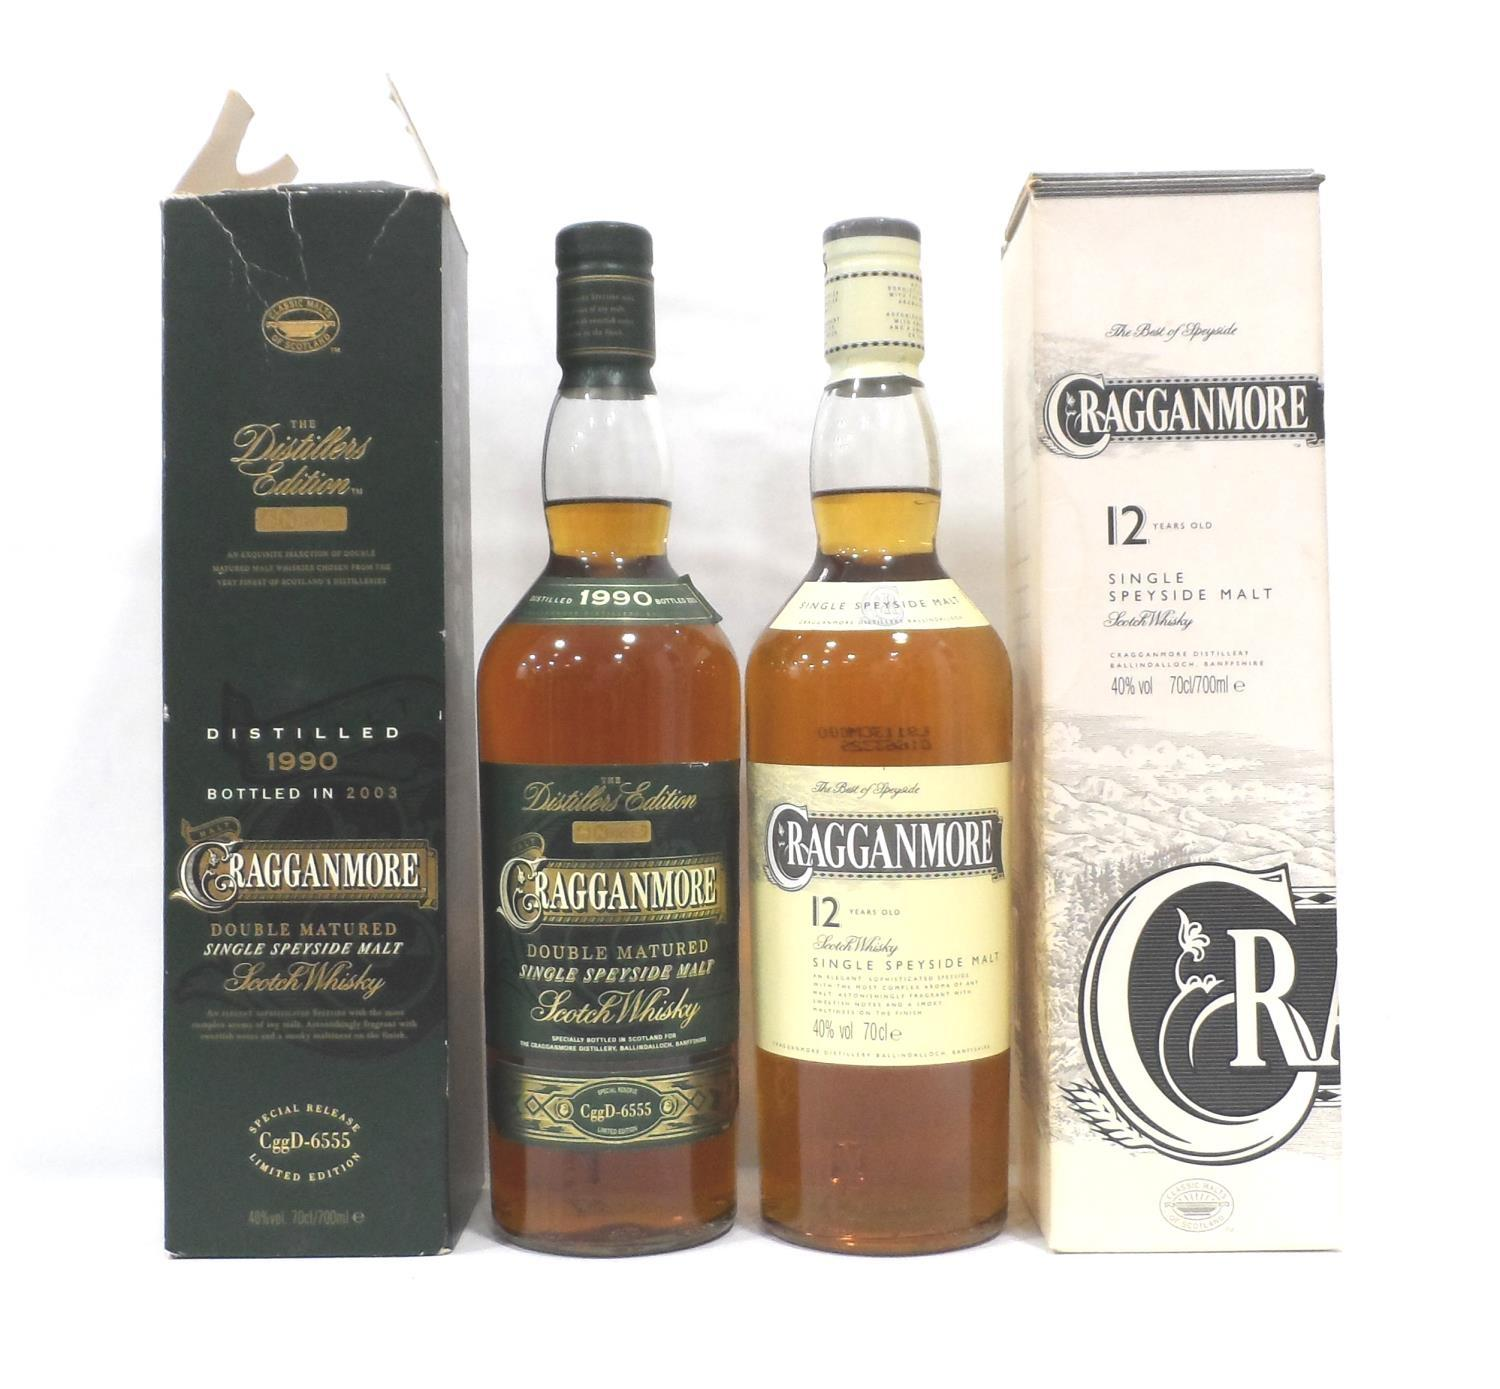 TWO CRAGGANMORE A pair of Cragganmore expressions. First a Cragganmore Distillers Edition Single